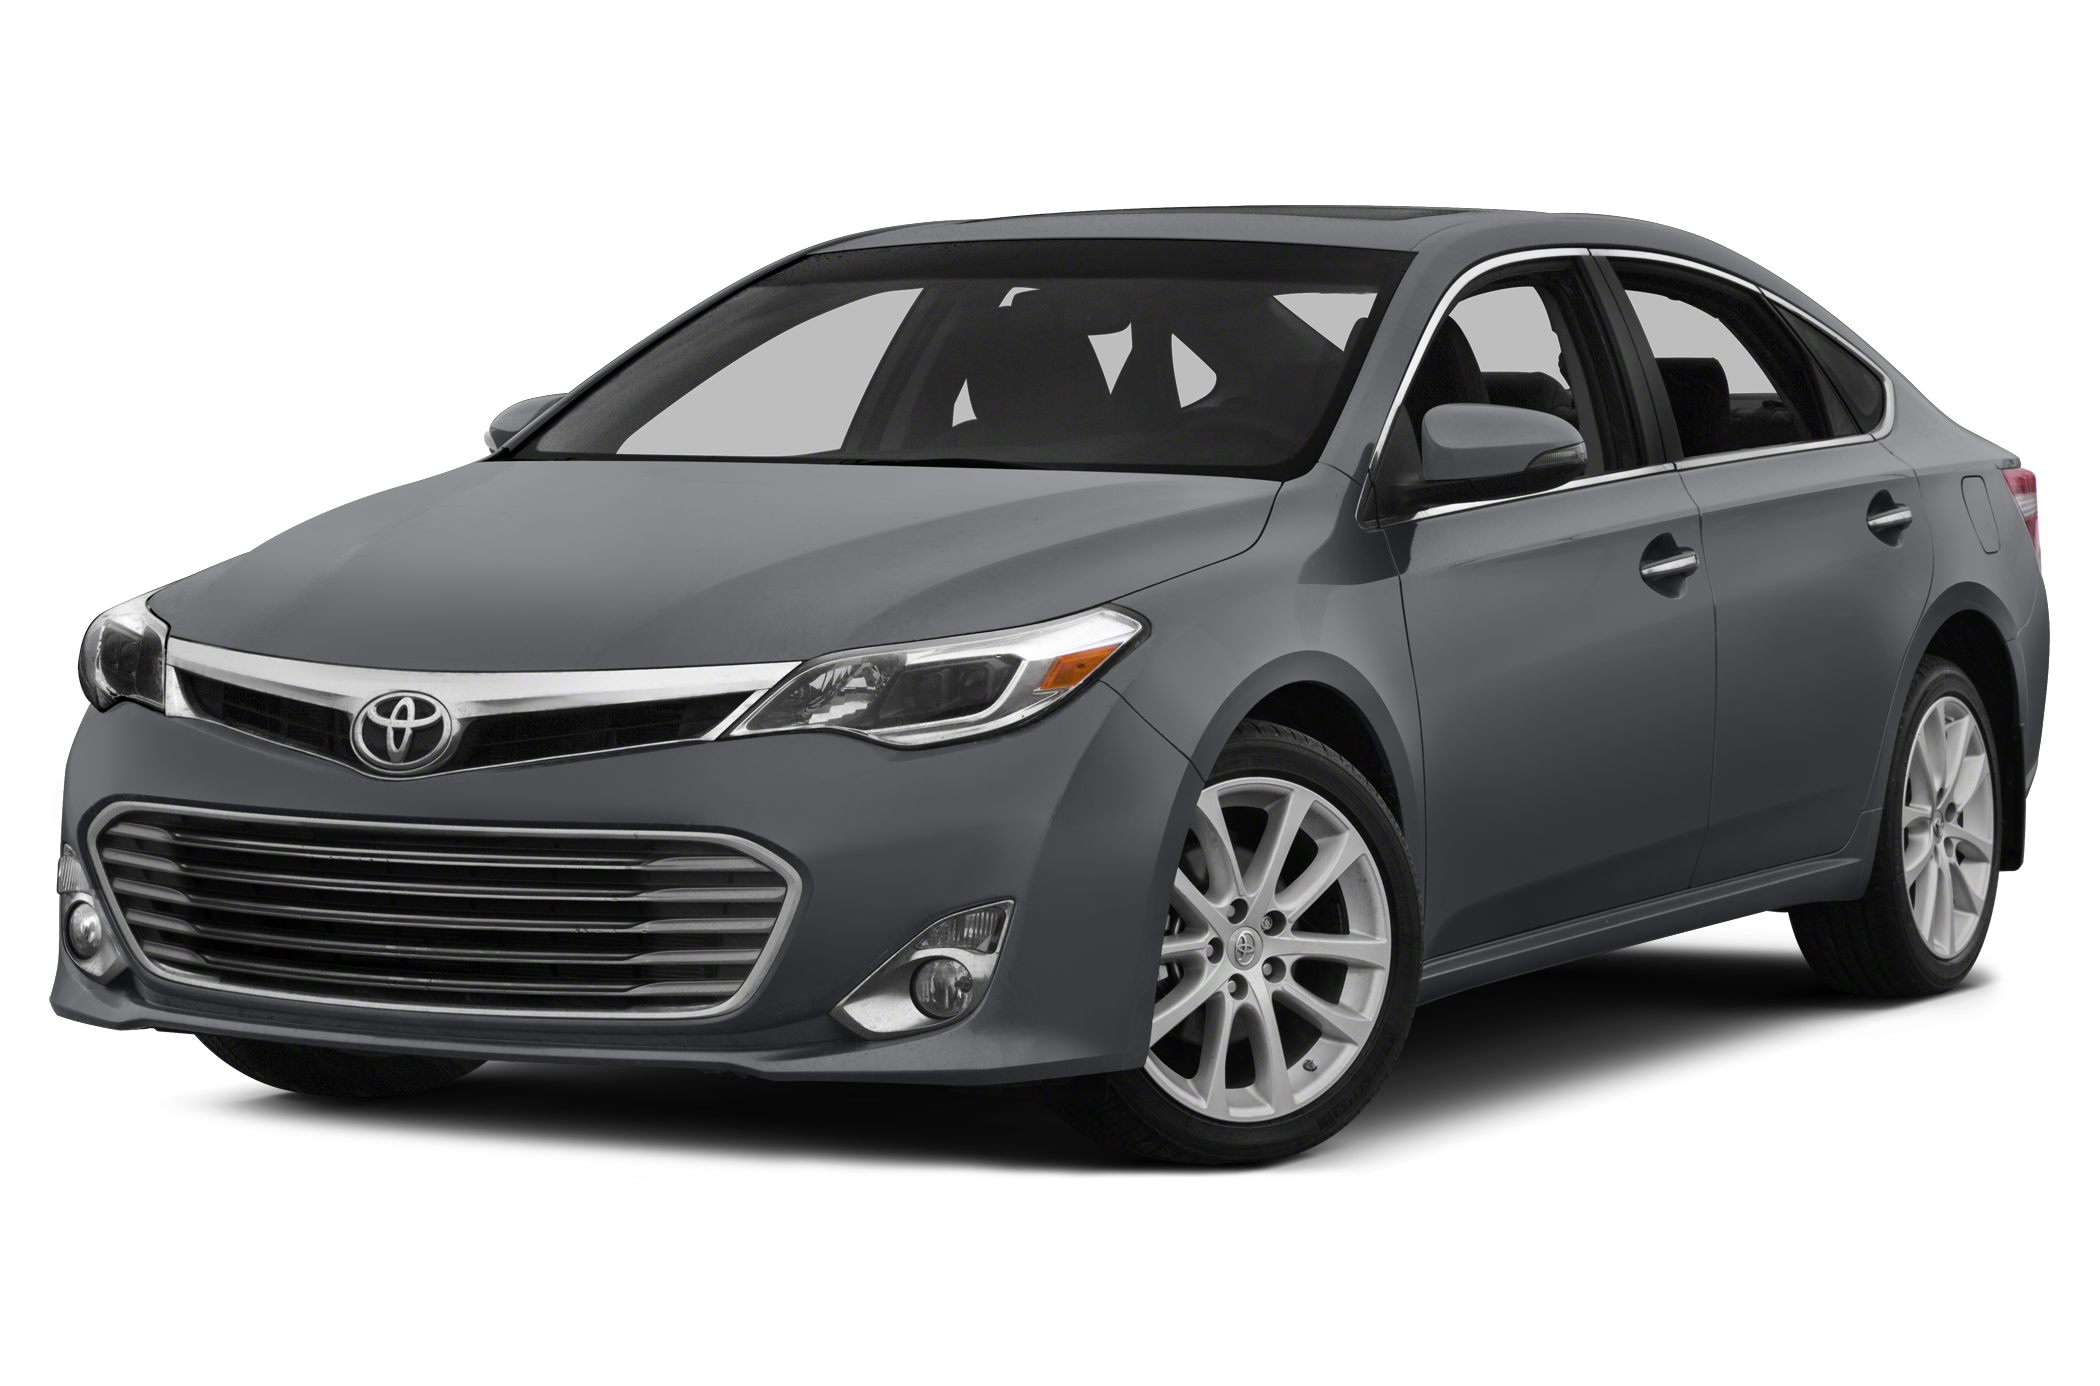 2013 Toyota Avalon Limited Toyota Certified PRICED TO MOVE 2100 below Kelley Blue Book NAV Su